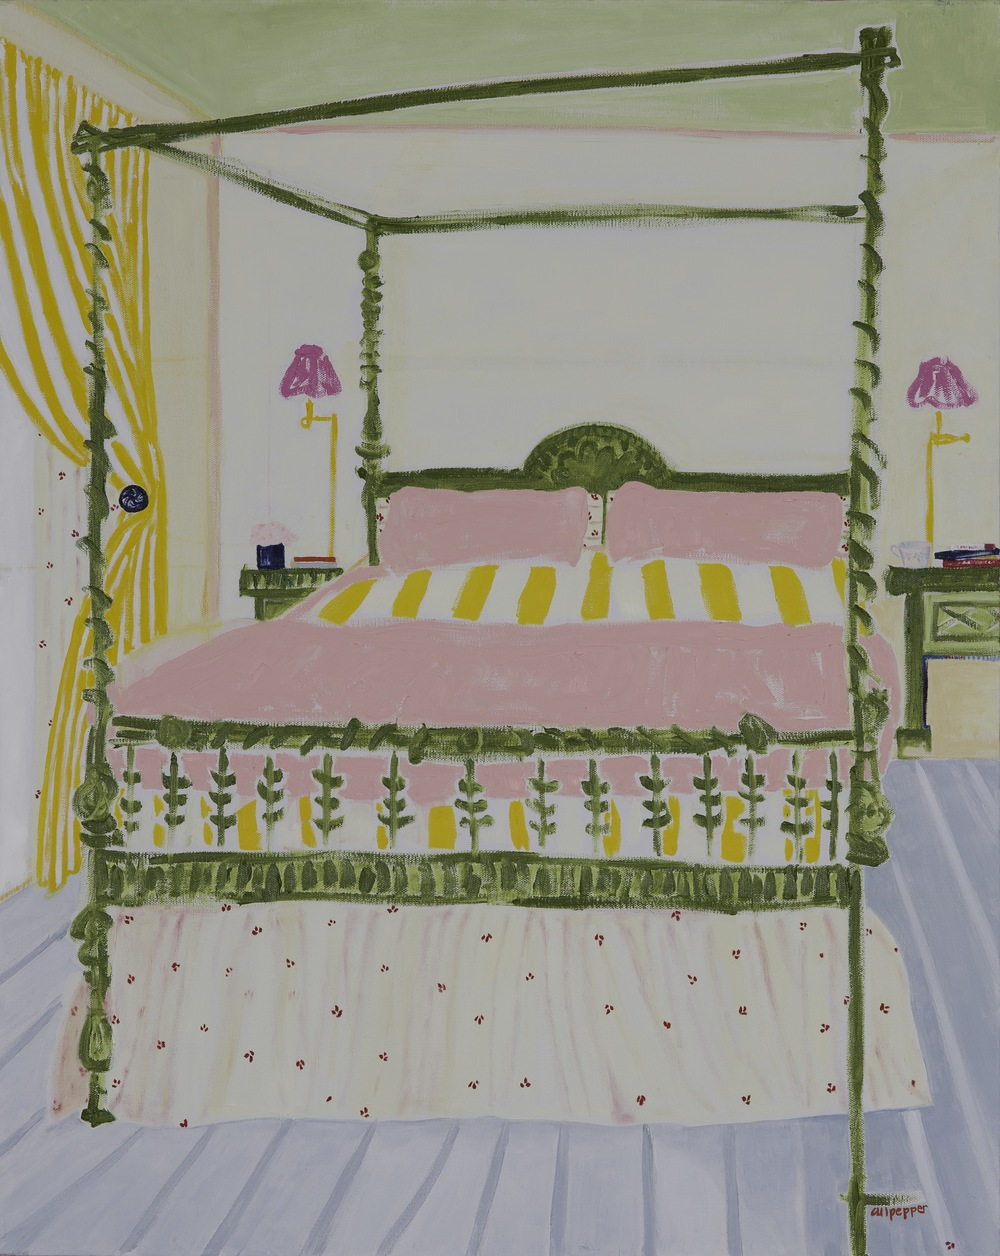 e.m. gordan's bed    oil + pencil on canvas  |  30 x 24